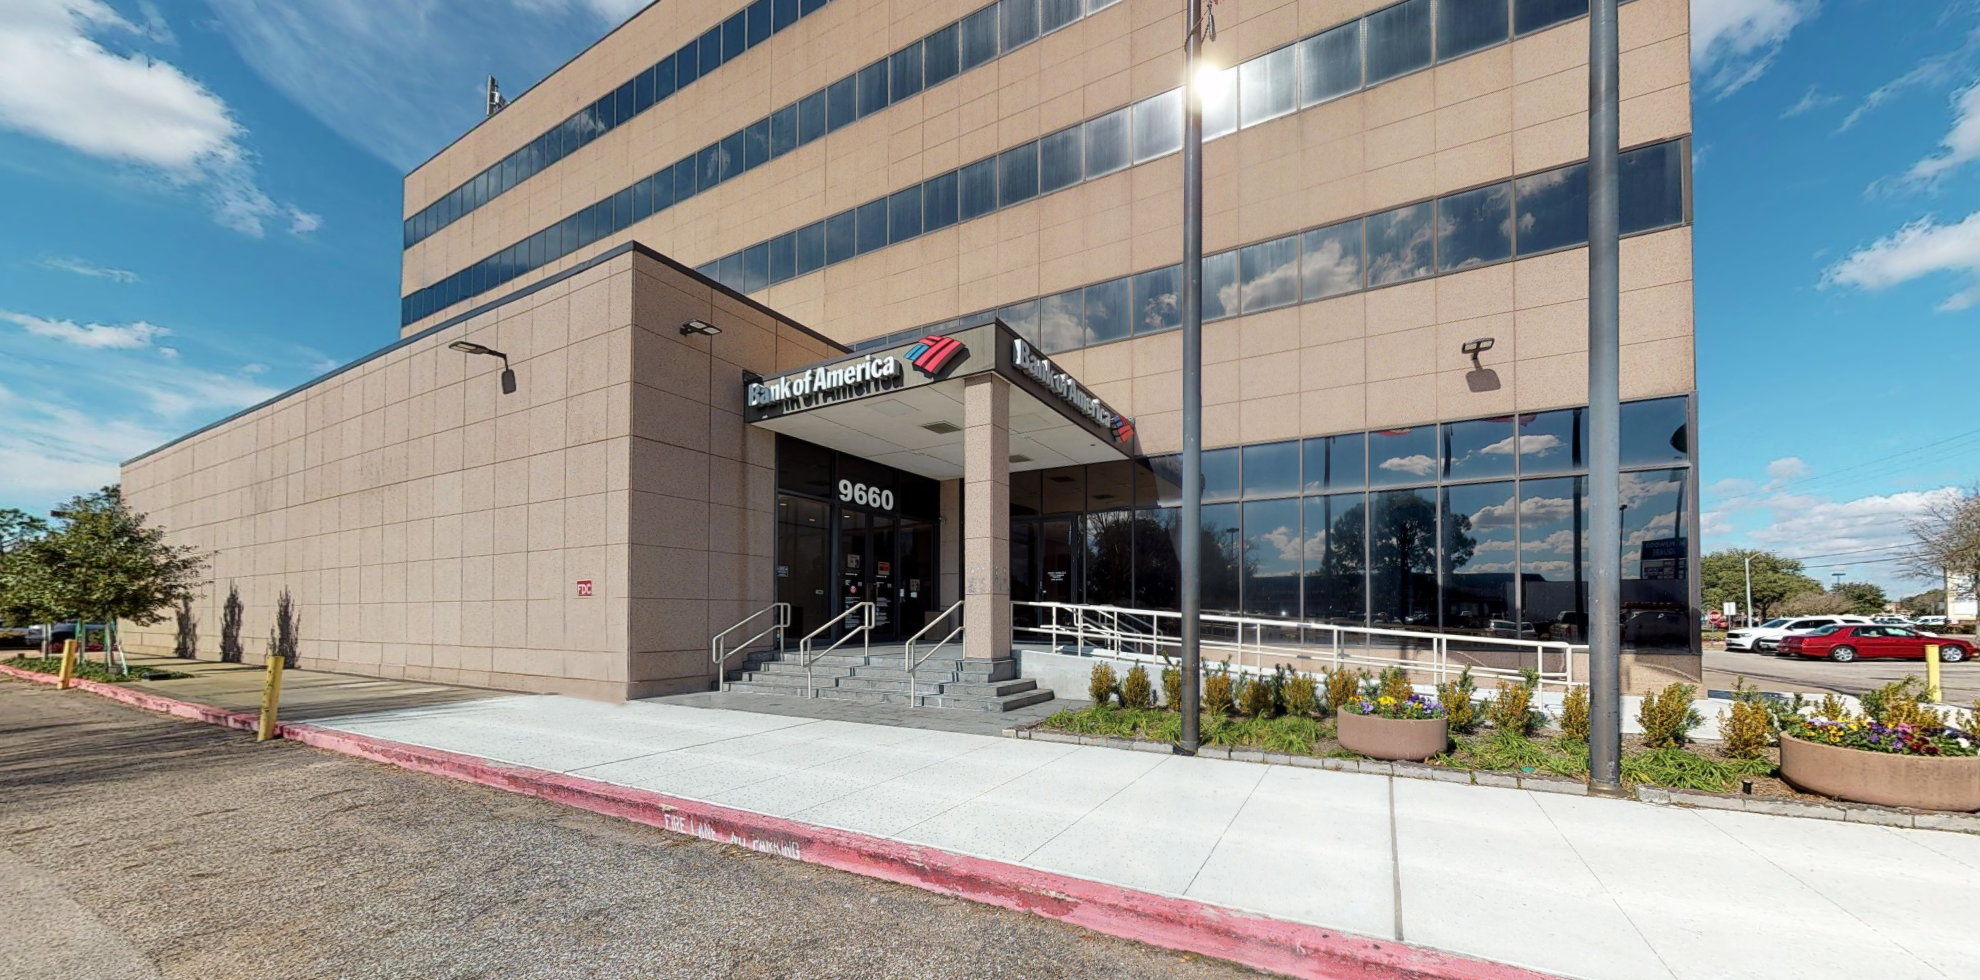 Bank of America financial center with walk-up ATM | 9660 Hillcroft St, Houston, TX 77096